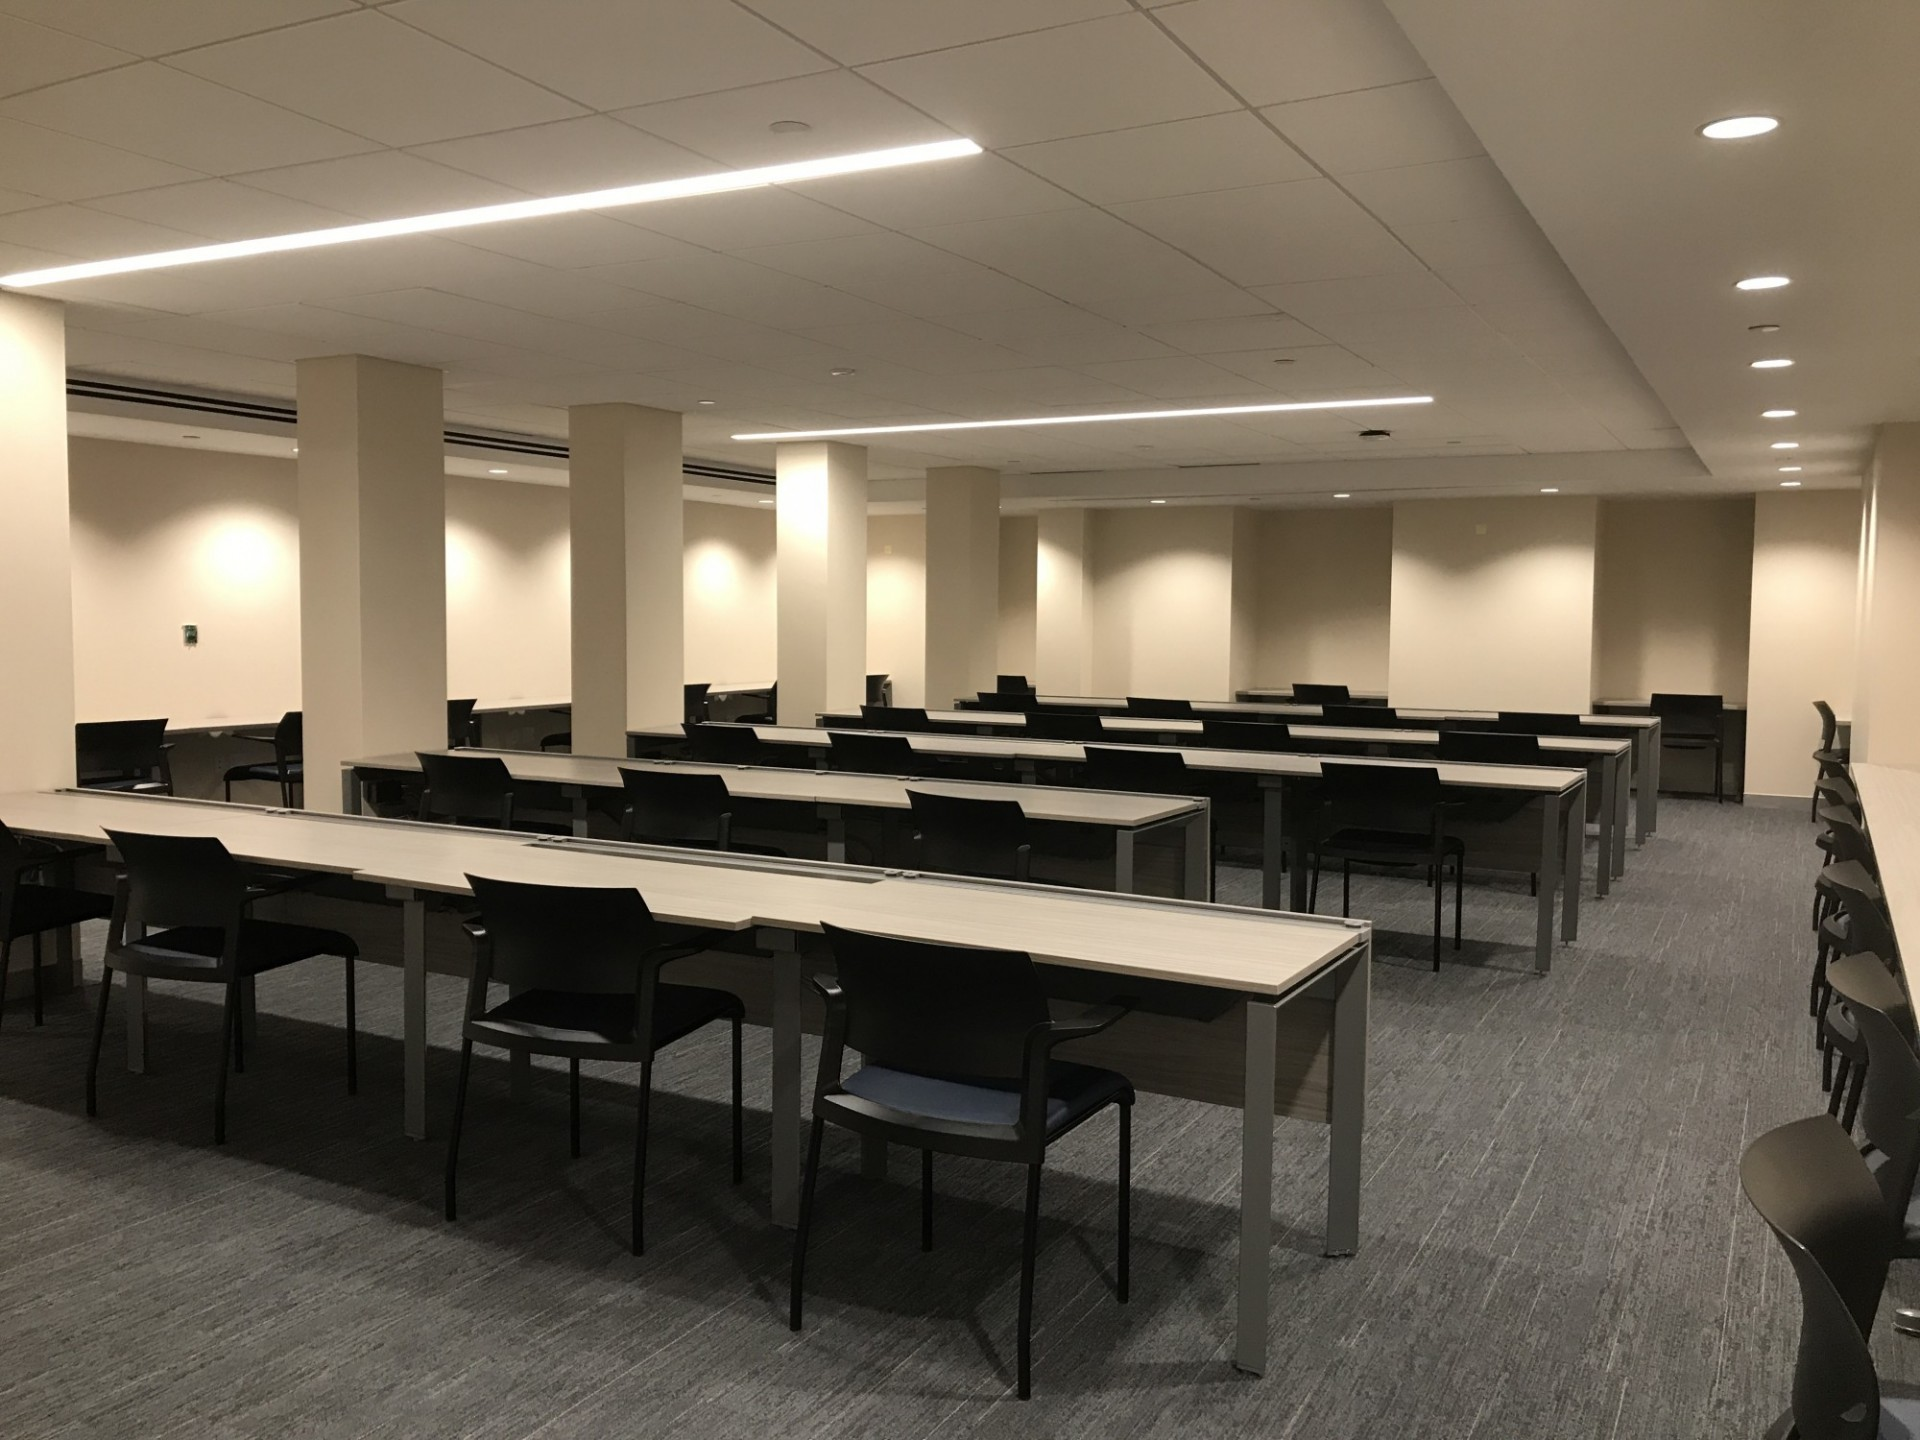 A large testing room in Havemeyer Hall with tables and chairs.